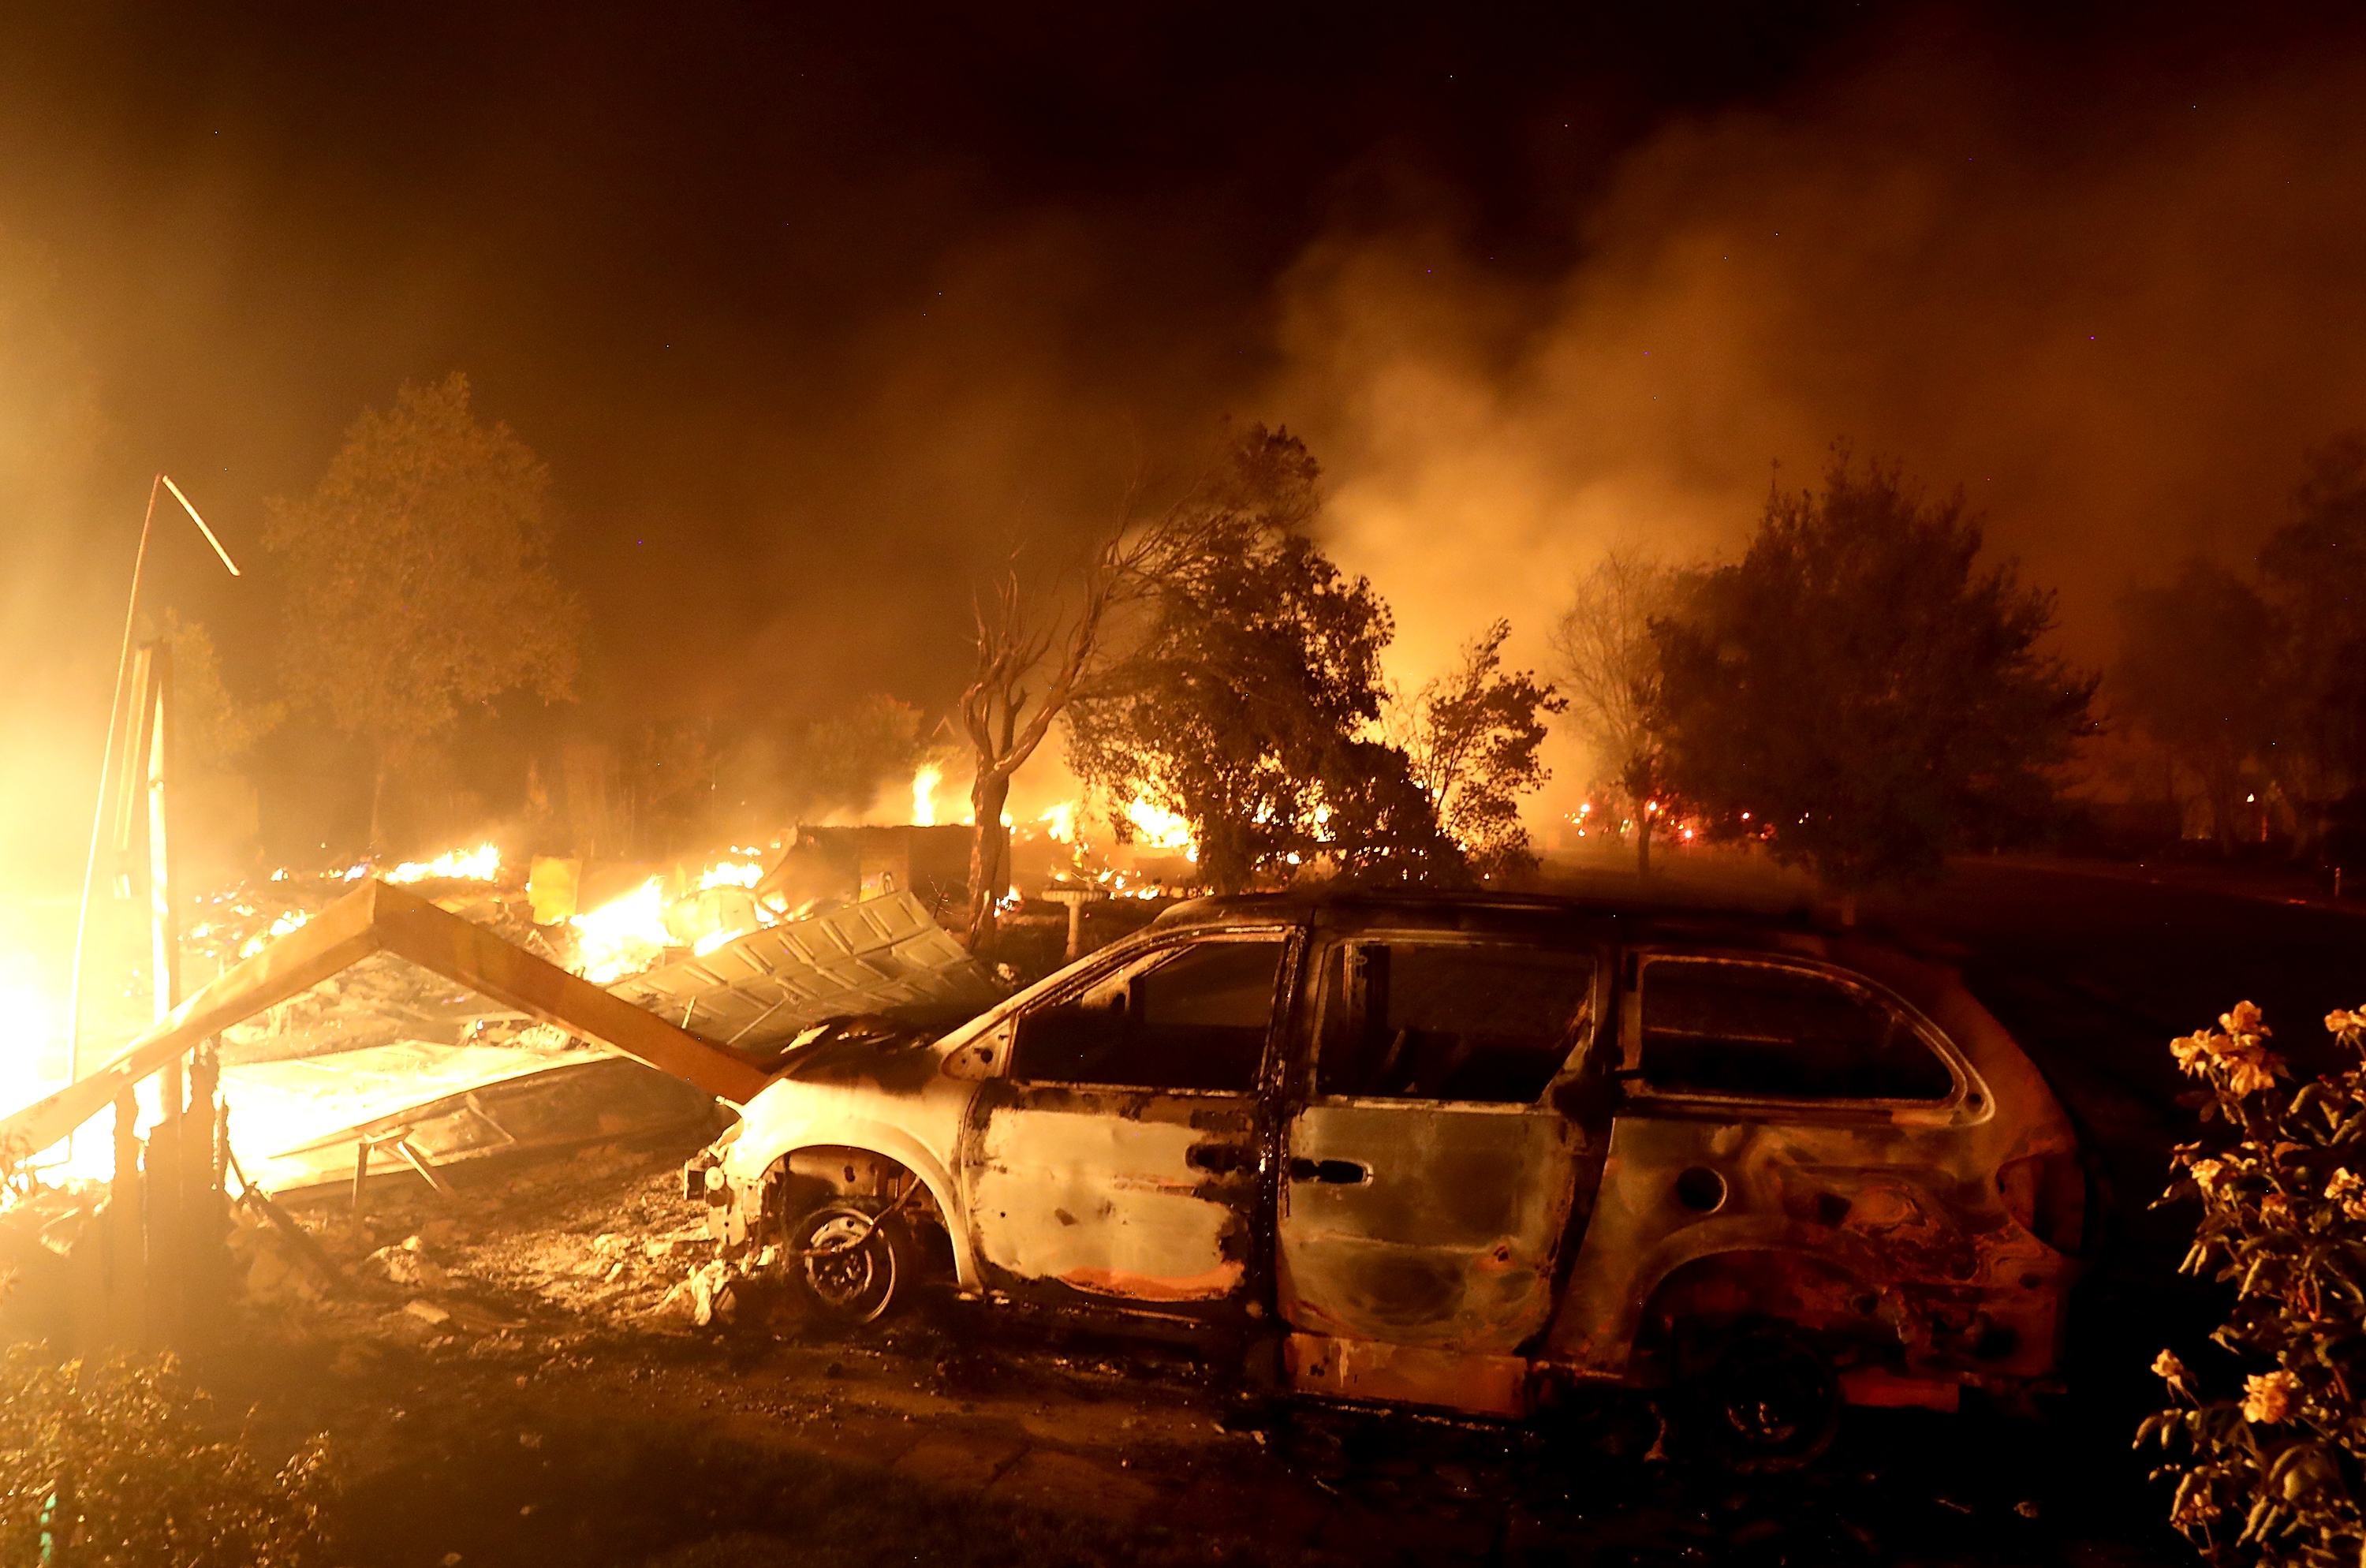 California governor issues fire emergency for two counties ravaged by wildfire